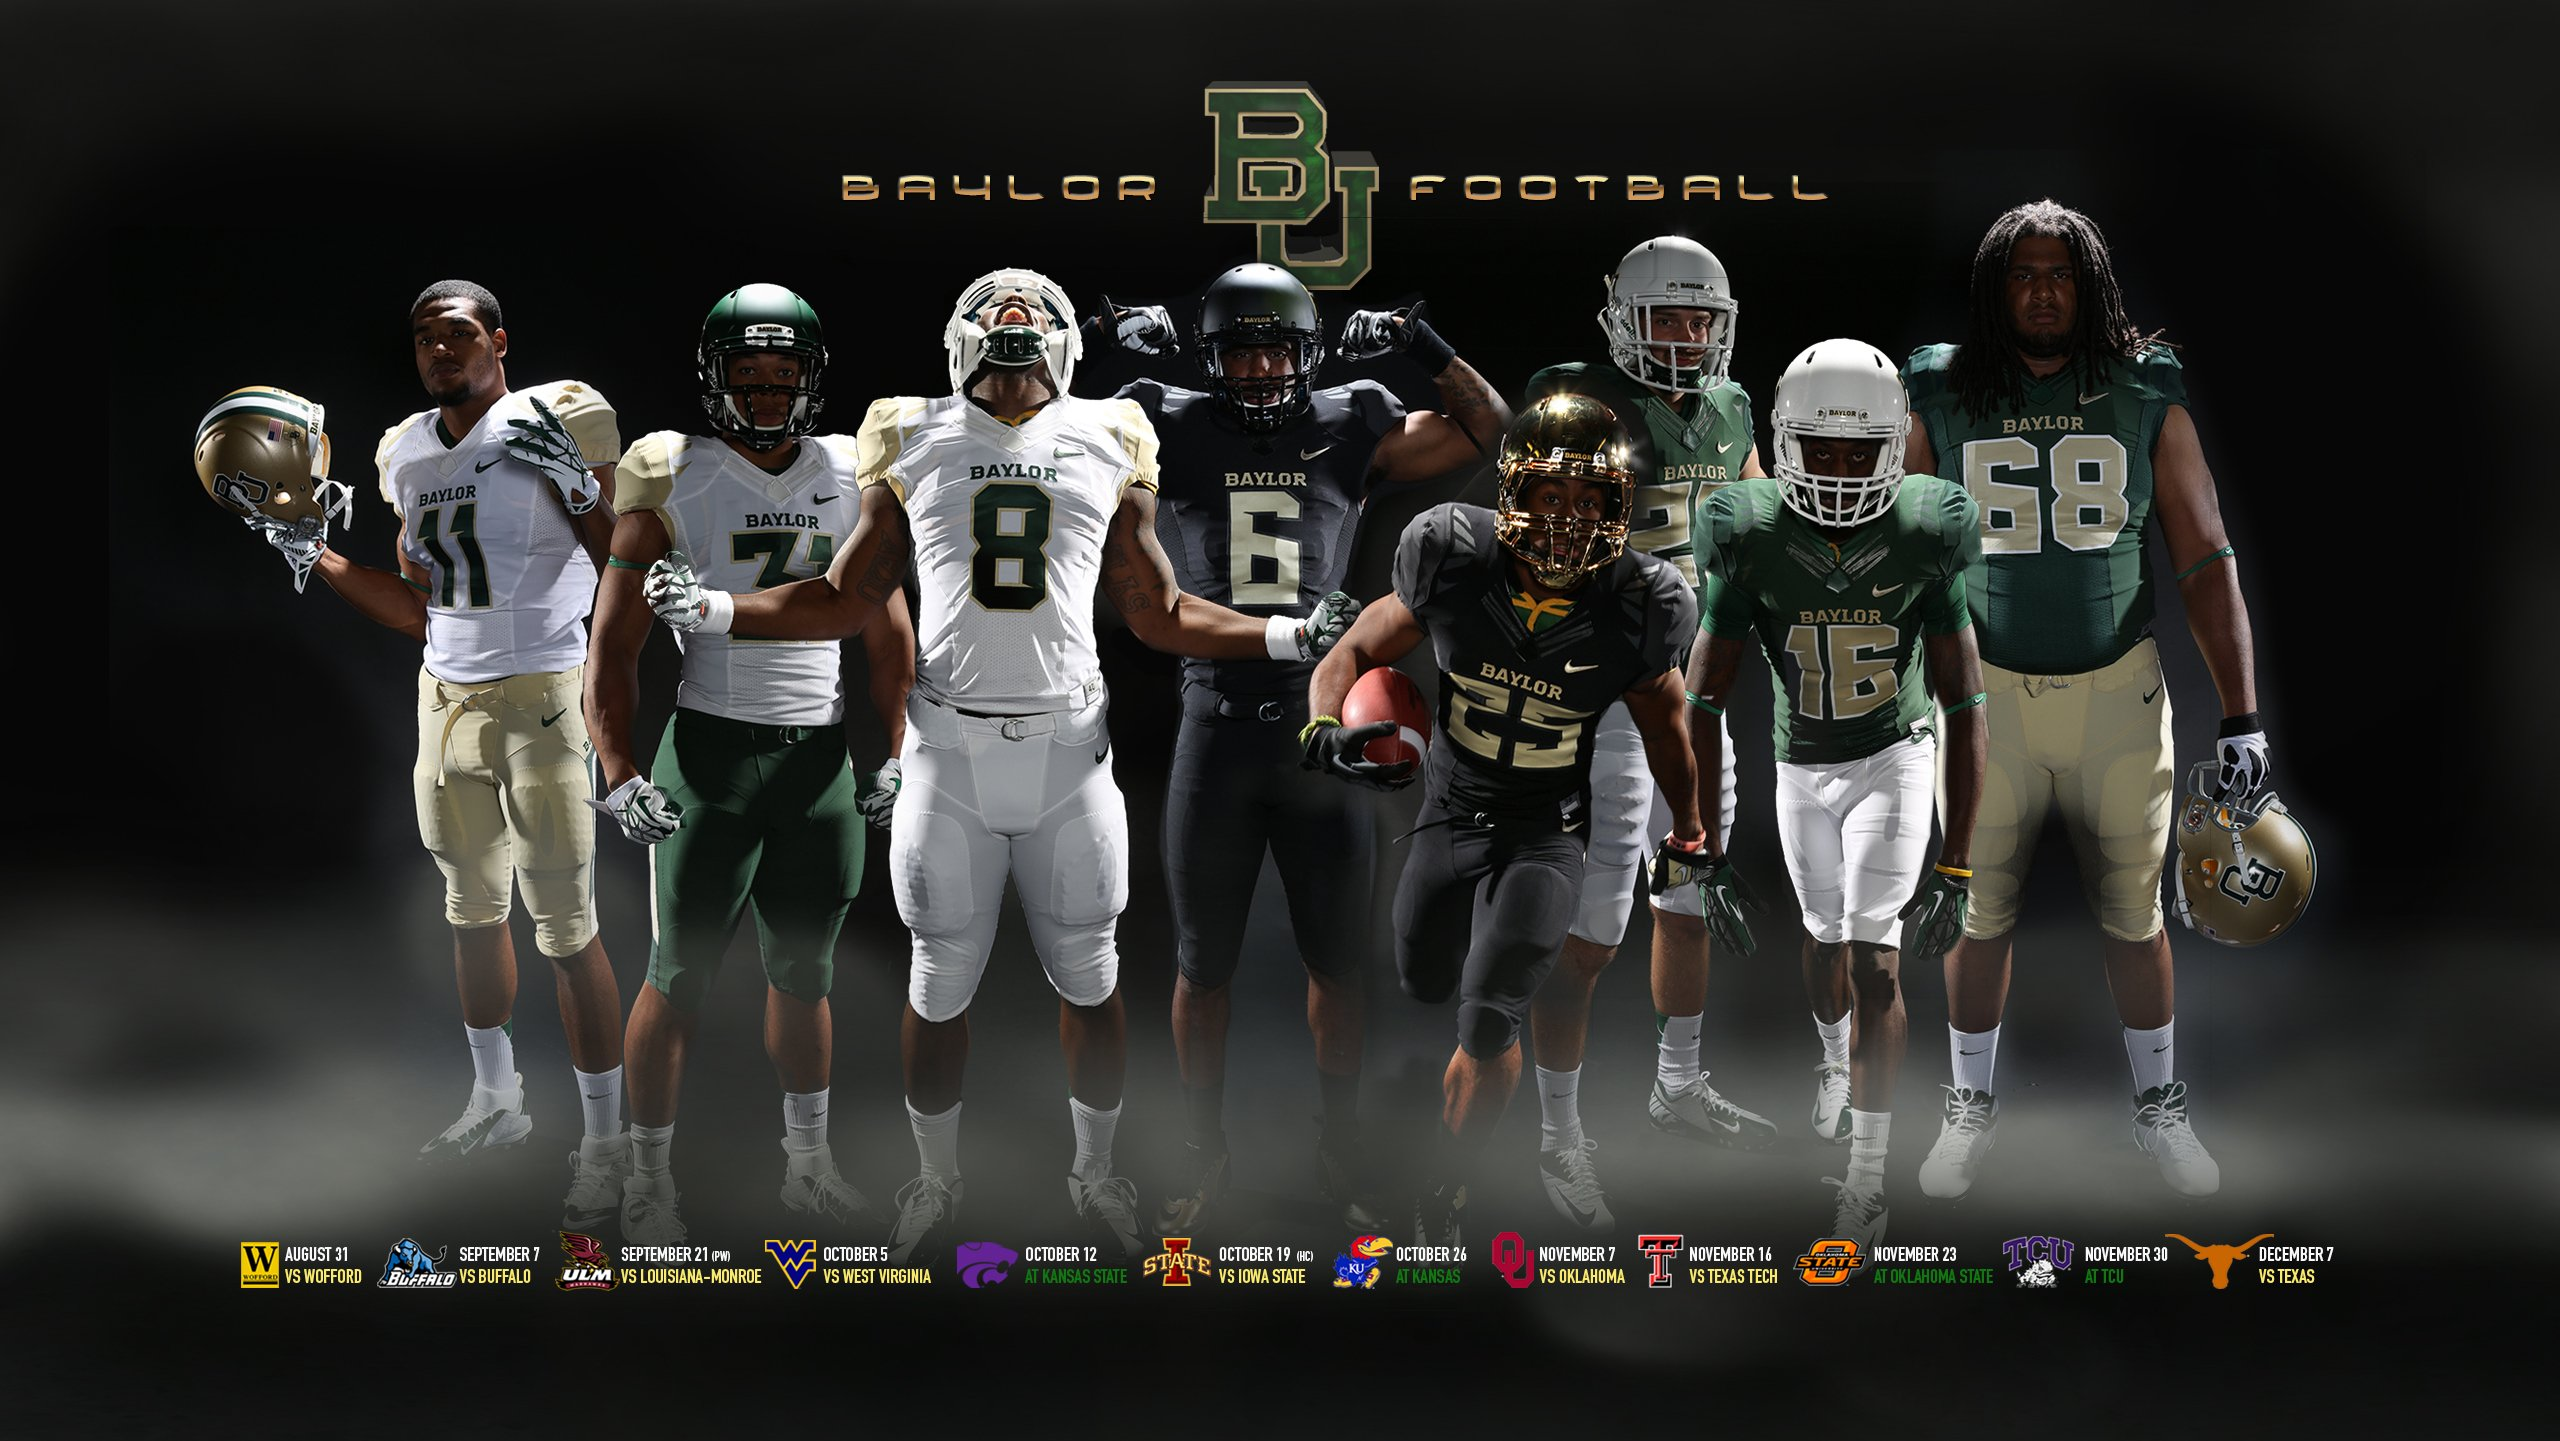 Baylor Wallpaper wwwpixsharkcom   Images Galleries 2560x1441